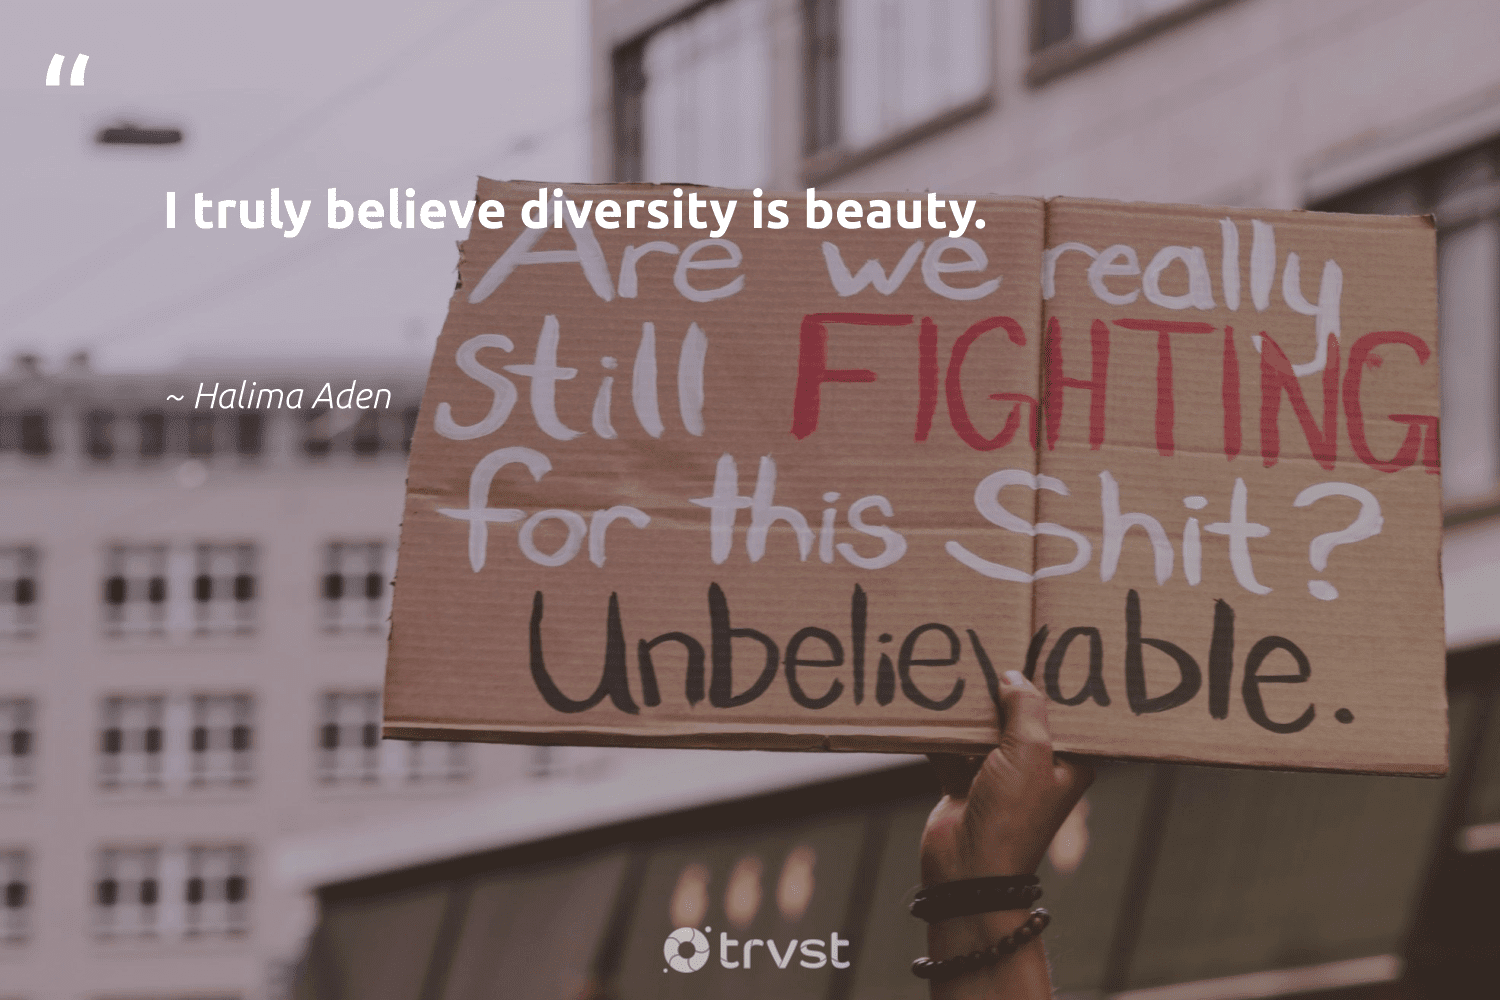 """""""I truly believe diversity is beauty.""""  - Halima Aden #trvst #quotes #diversity #beauty #representationmatters #inclusion #weareallone #makeadifference #ecoconscious #discrimination #socialgood #socialchange"""